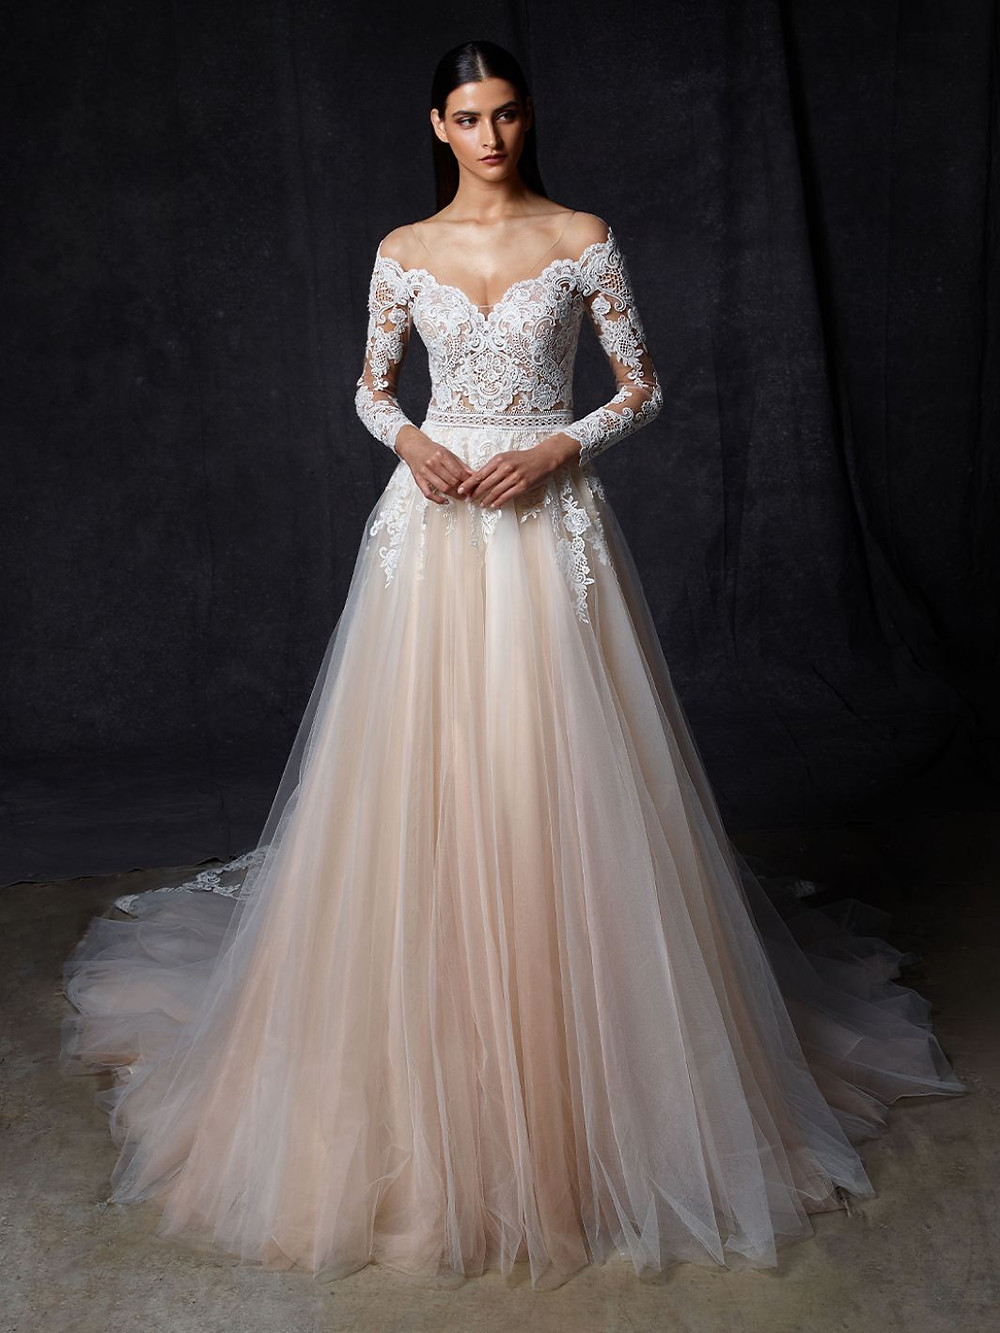 An Enzoani blush, off the shoulder A-line wedding dress with long lace sleeves and a tulle skirt